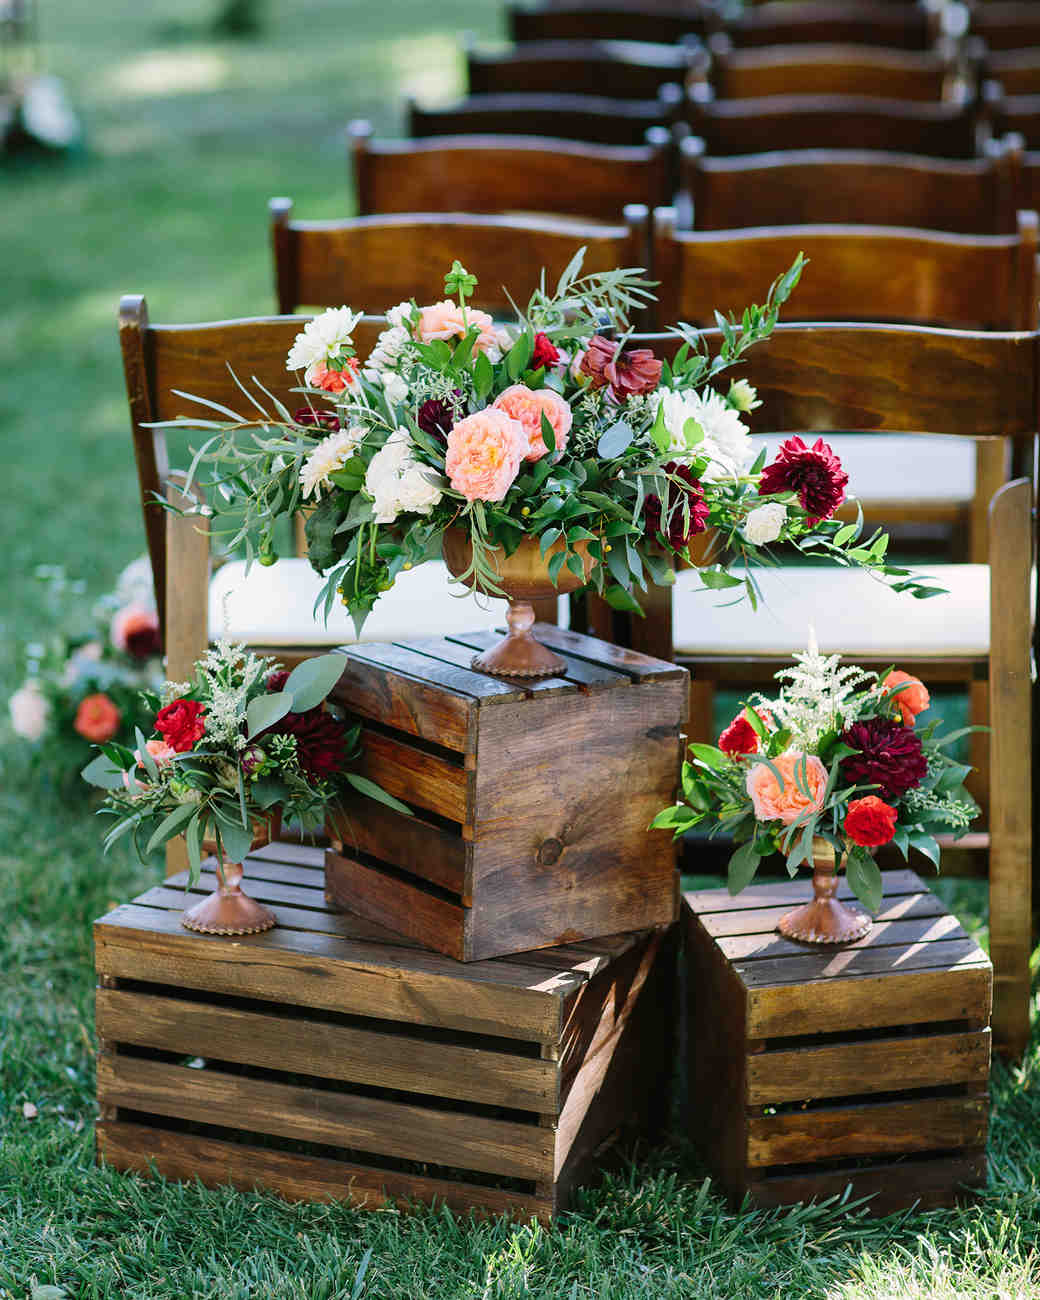 Wedding Altars For Sale: 35 Altar And Aisle Decorations We Love